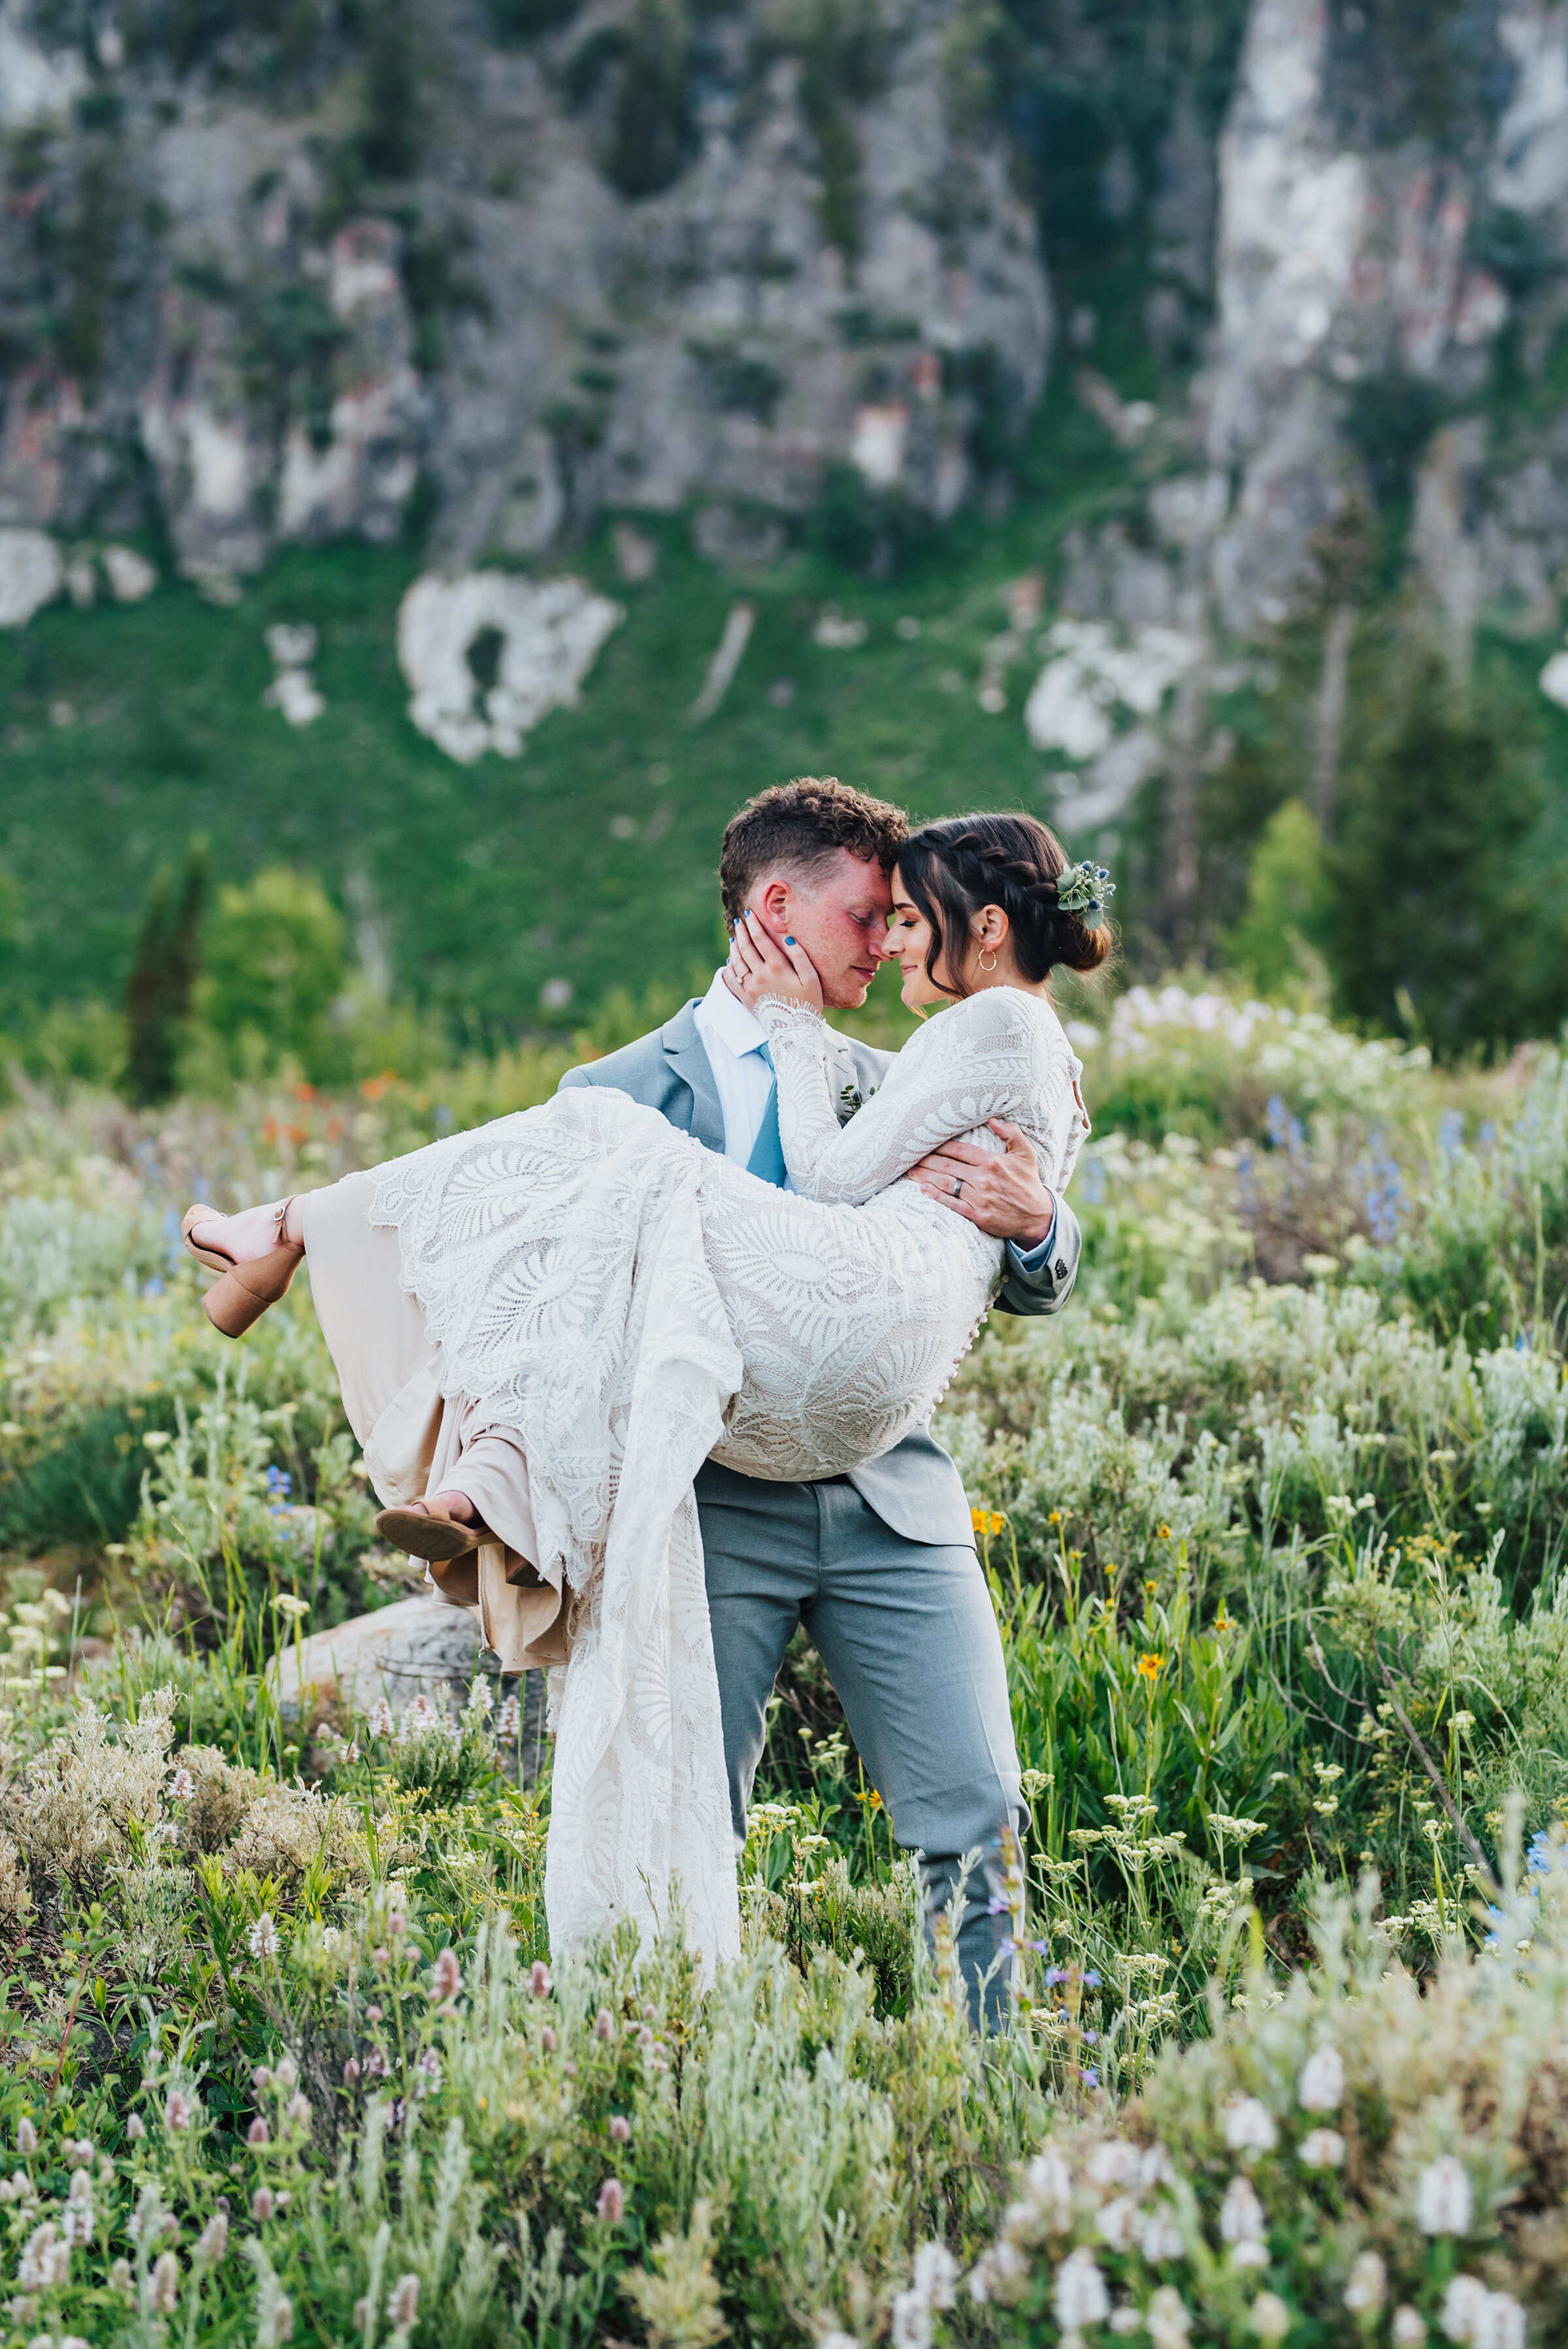 Stunning couple surrounded by wild flowers during their formals up Logan canyon. Kristi Alyse photography Logan Utah wedding photographer forest nature dreamy formals Logan canyon Tony Grove scenic bridals Northern Utah photographer Utah brides bride and groom Cache Valley #kristialysephotography #loganutahphotographer #tonygrove #logancanyon #utahweddingphotographer #bridals #formals #wildflowers #northernutah #utahbrides